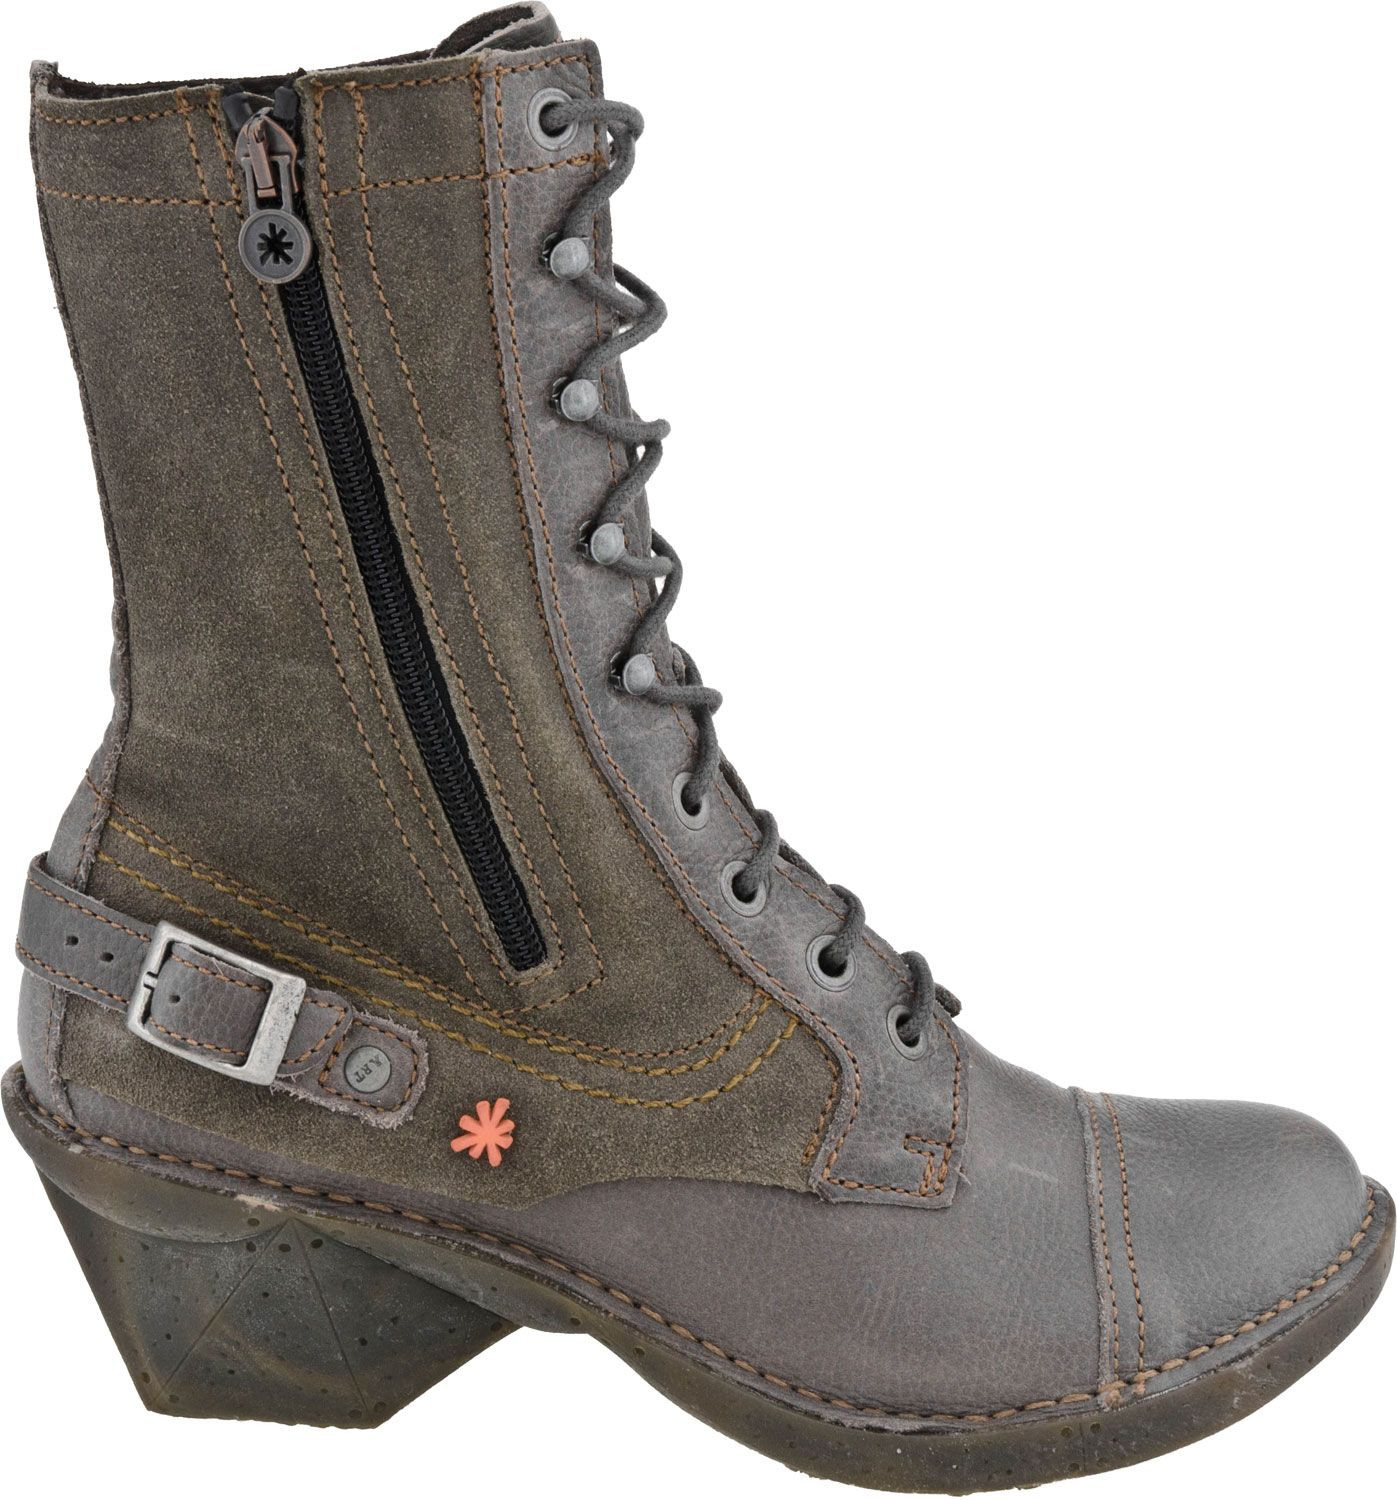 Art Company Oteiza 616 Boot | Combat boots, Boots, Shoes